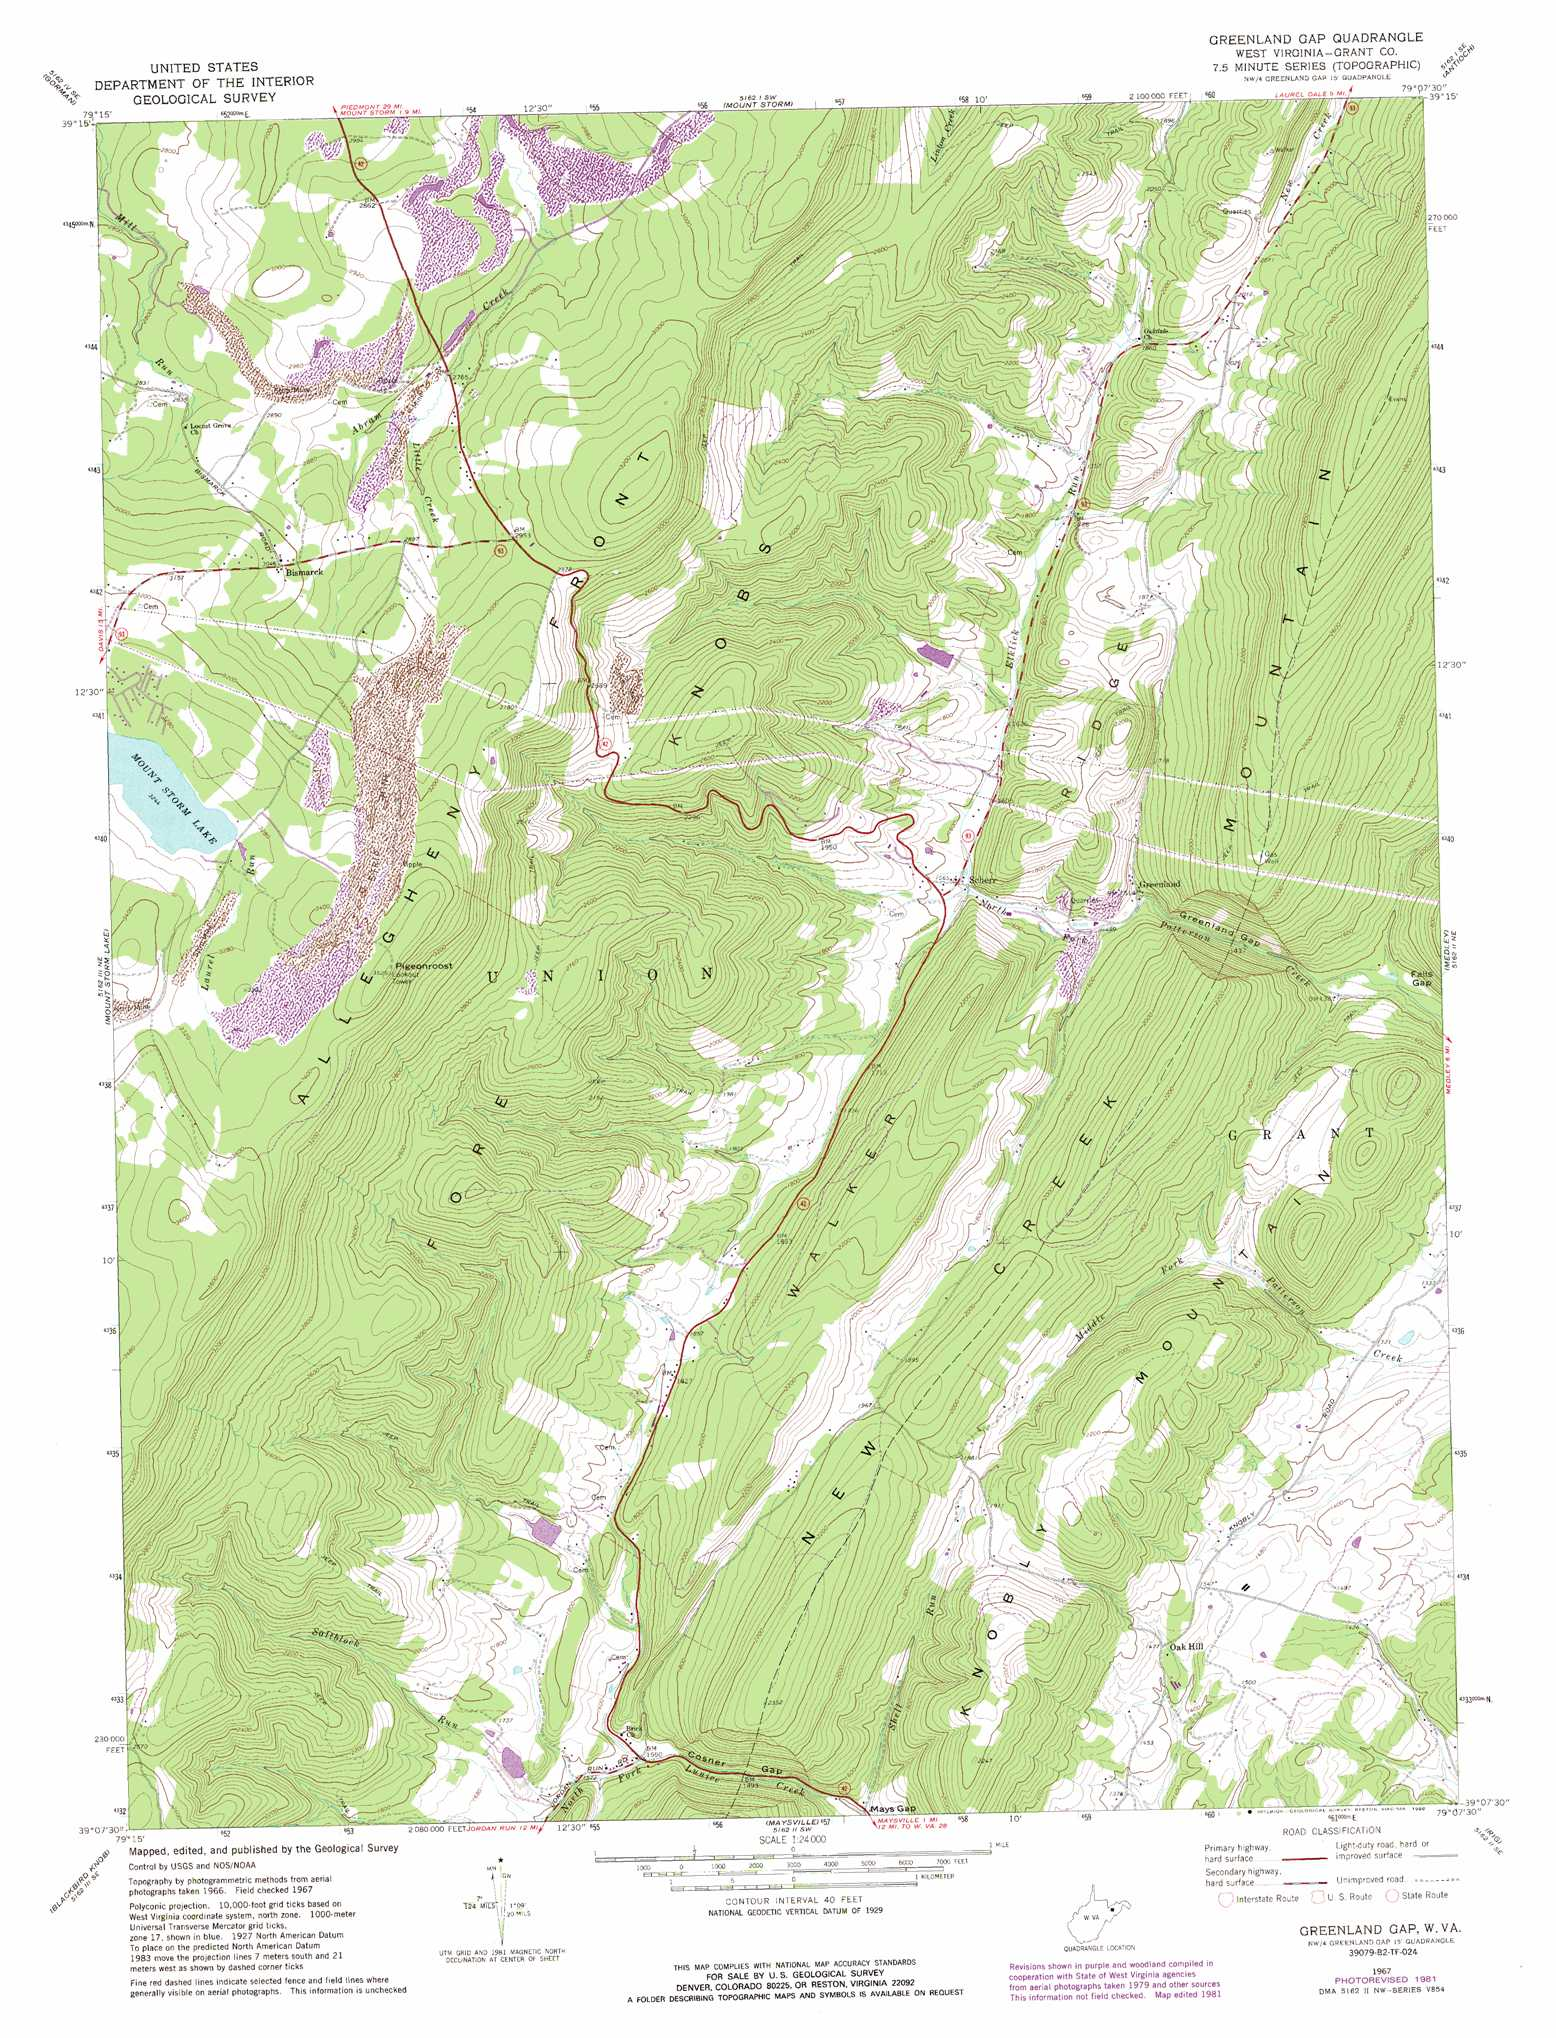 Greenland Gap topographic map, WV - USGS Topo Quad 39079b2